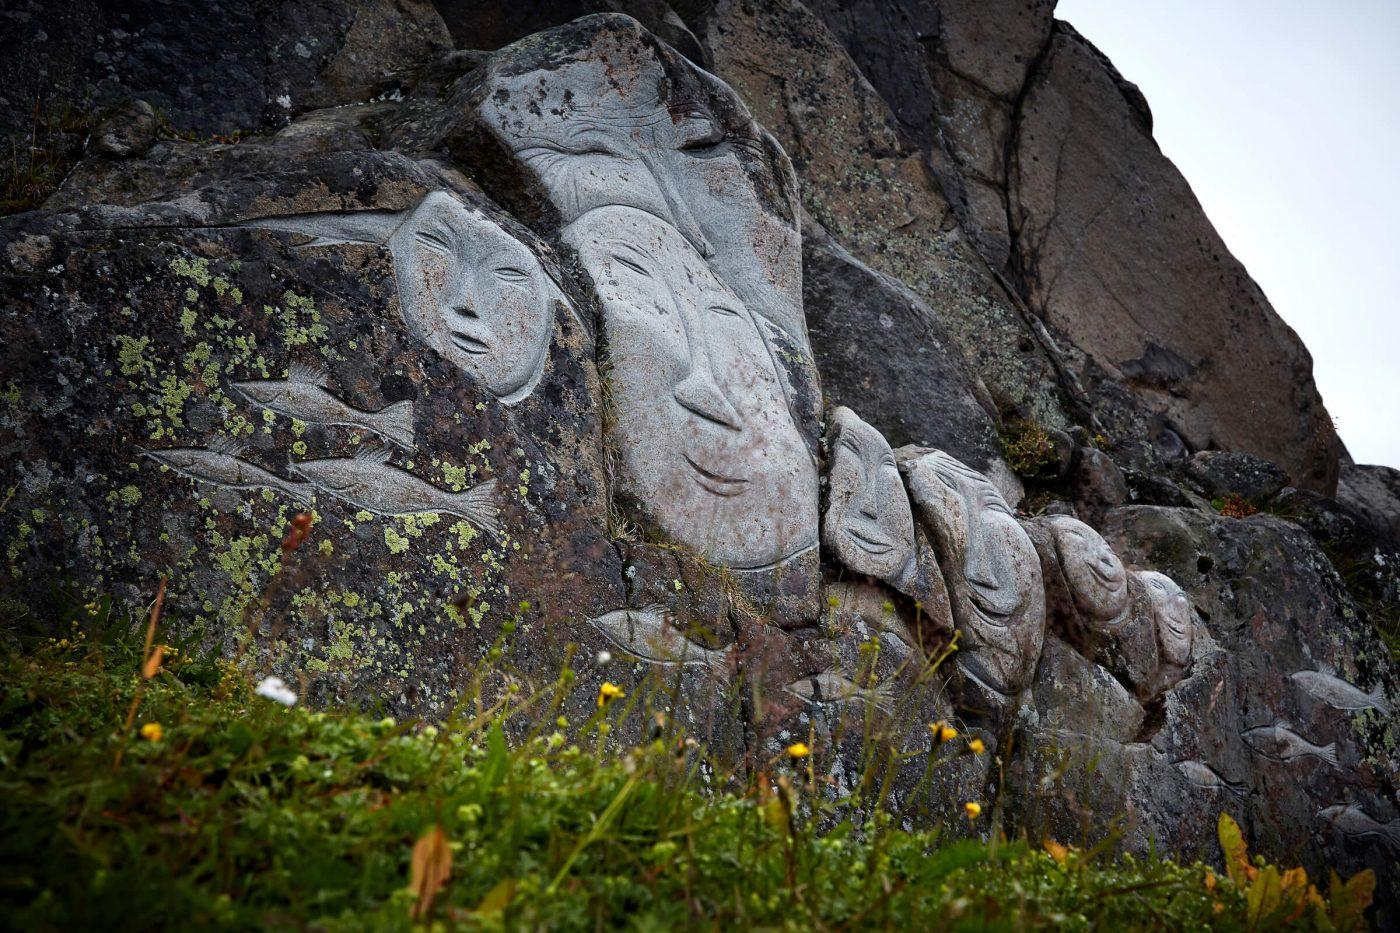 'Stone and Man' stone carvings in Qaqortoq. By Camilla Hey